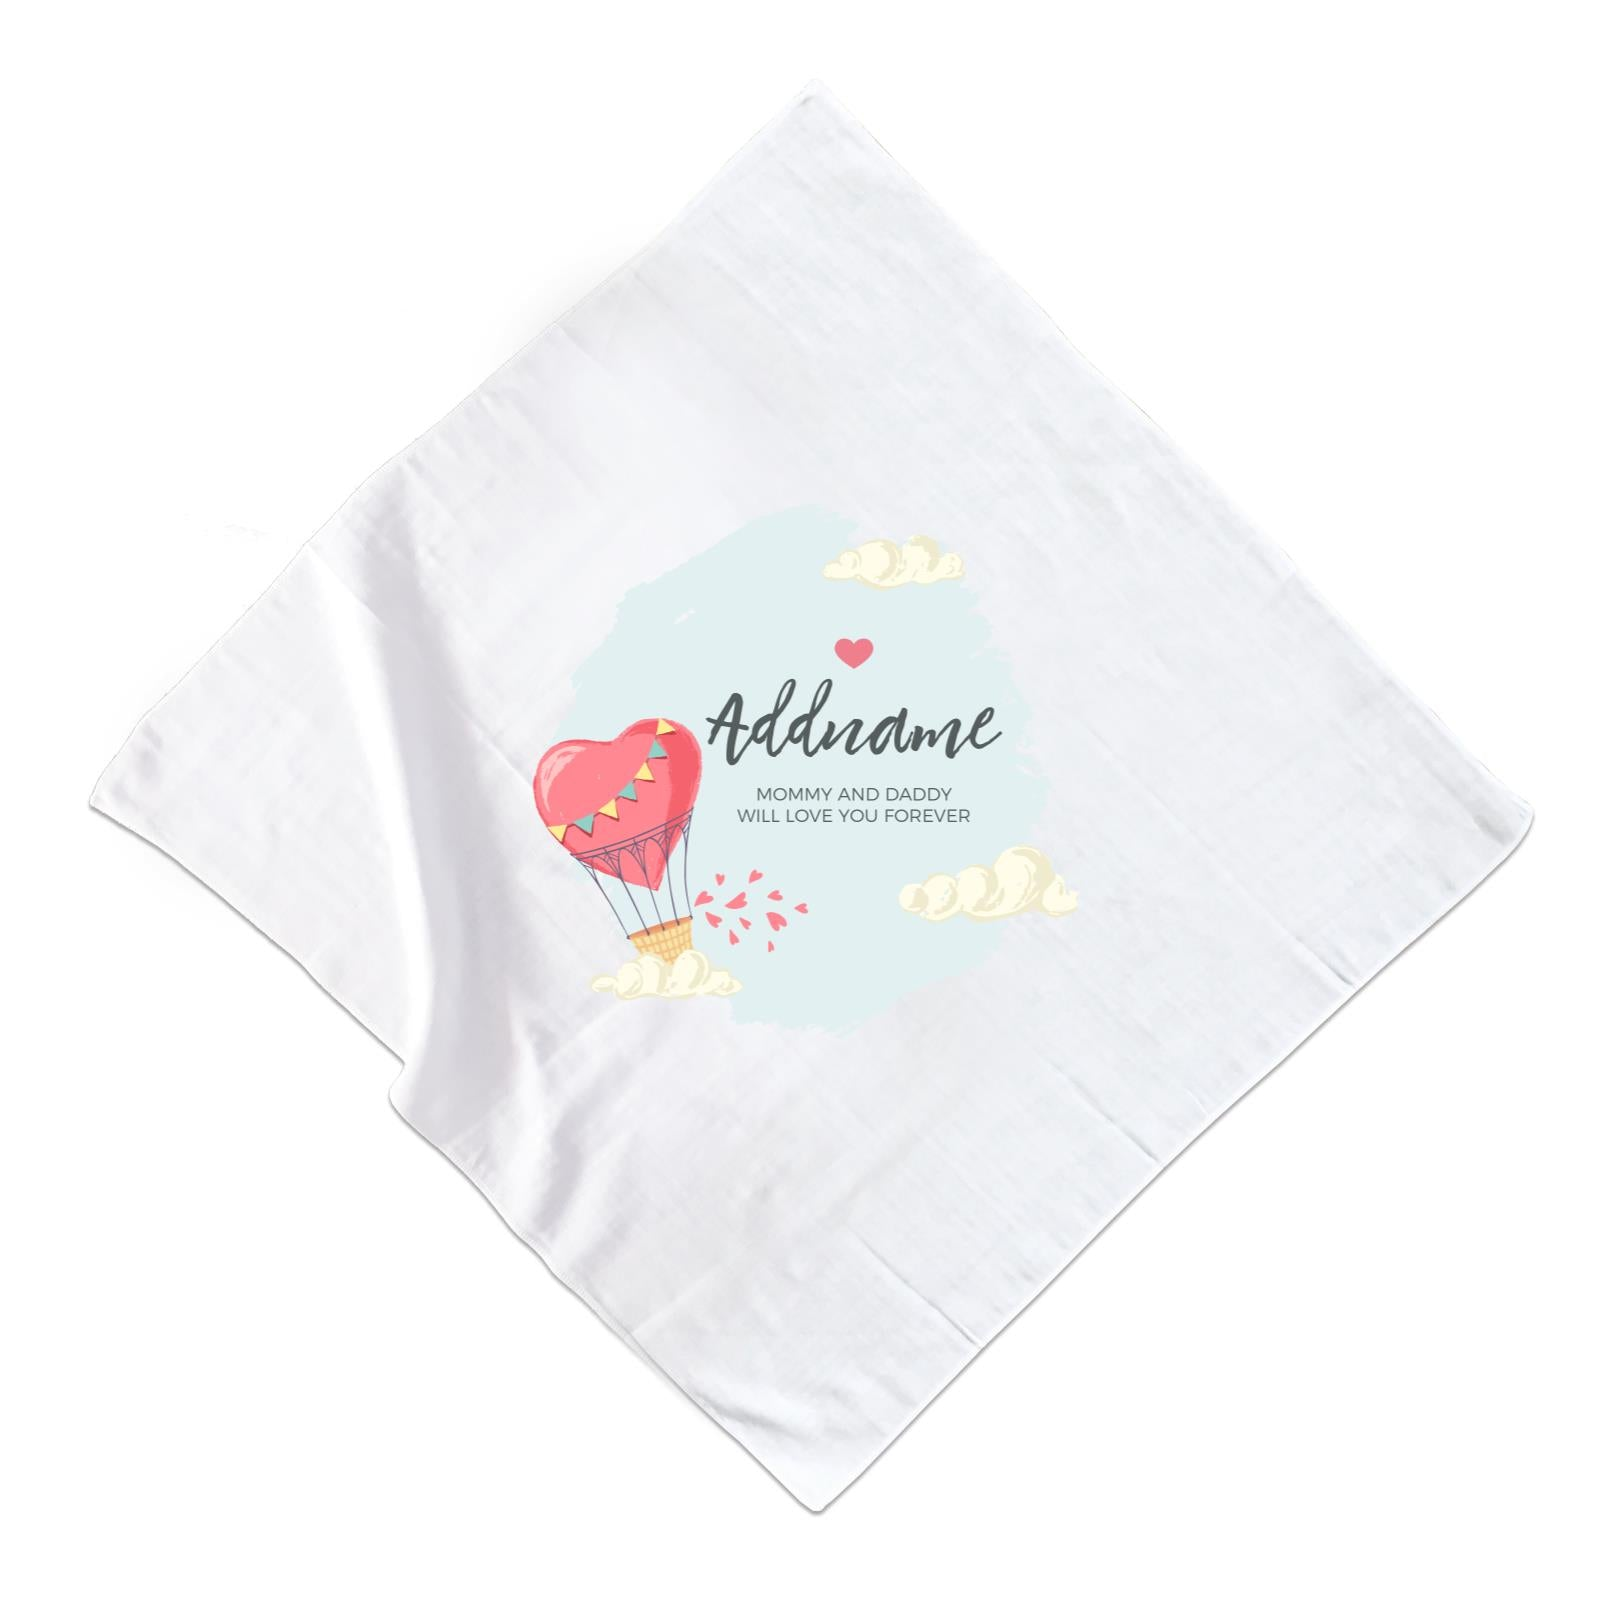 Heart Shaped Hot Air Balloon with Hearts and Clouds Personalizable with Name and Text Muslin Square